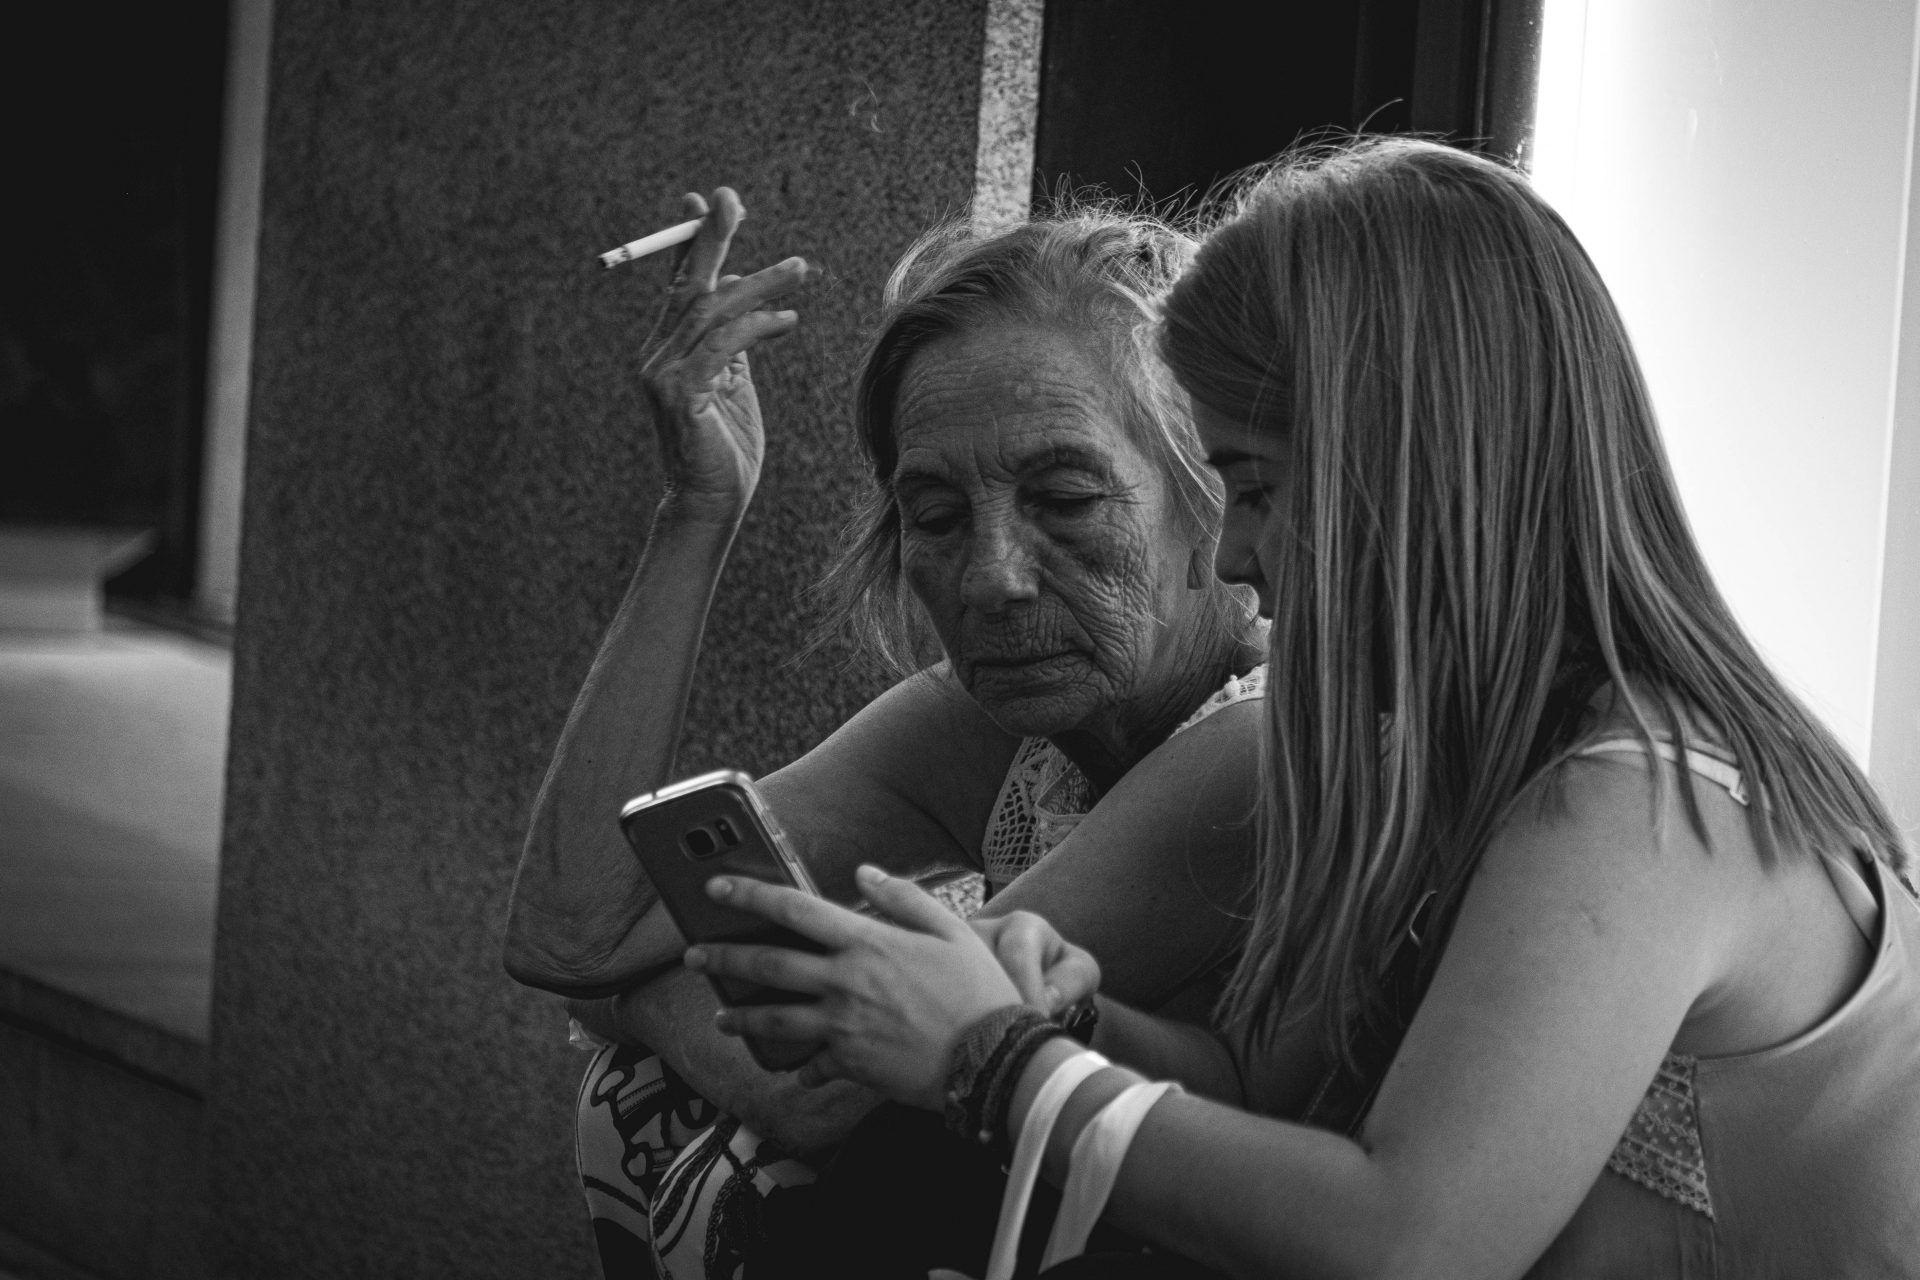 Elder women smoking a cigarette sitting with a young girl and staring at a phone photo by Jo Kassis